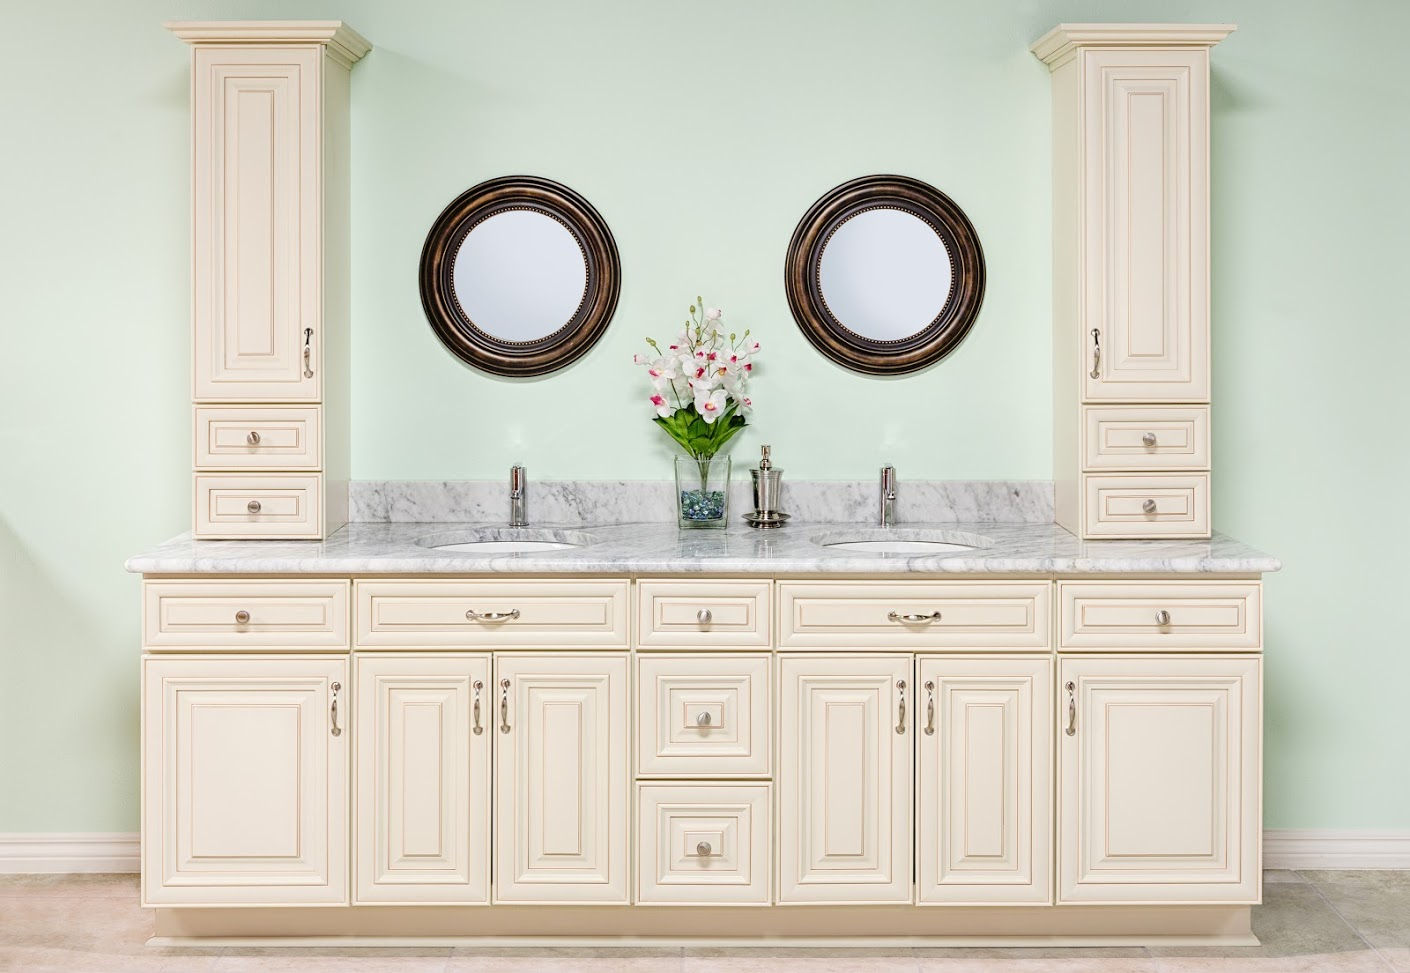 San Antonio Kitchen Cabinets Our Showroom New Generation Kitchen And Bath